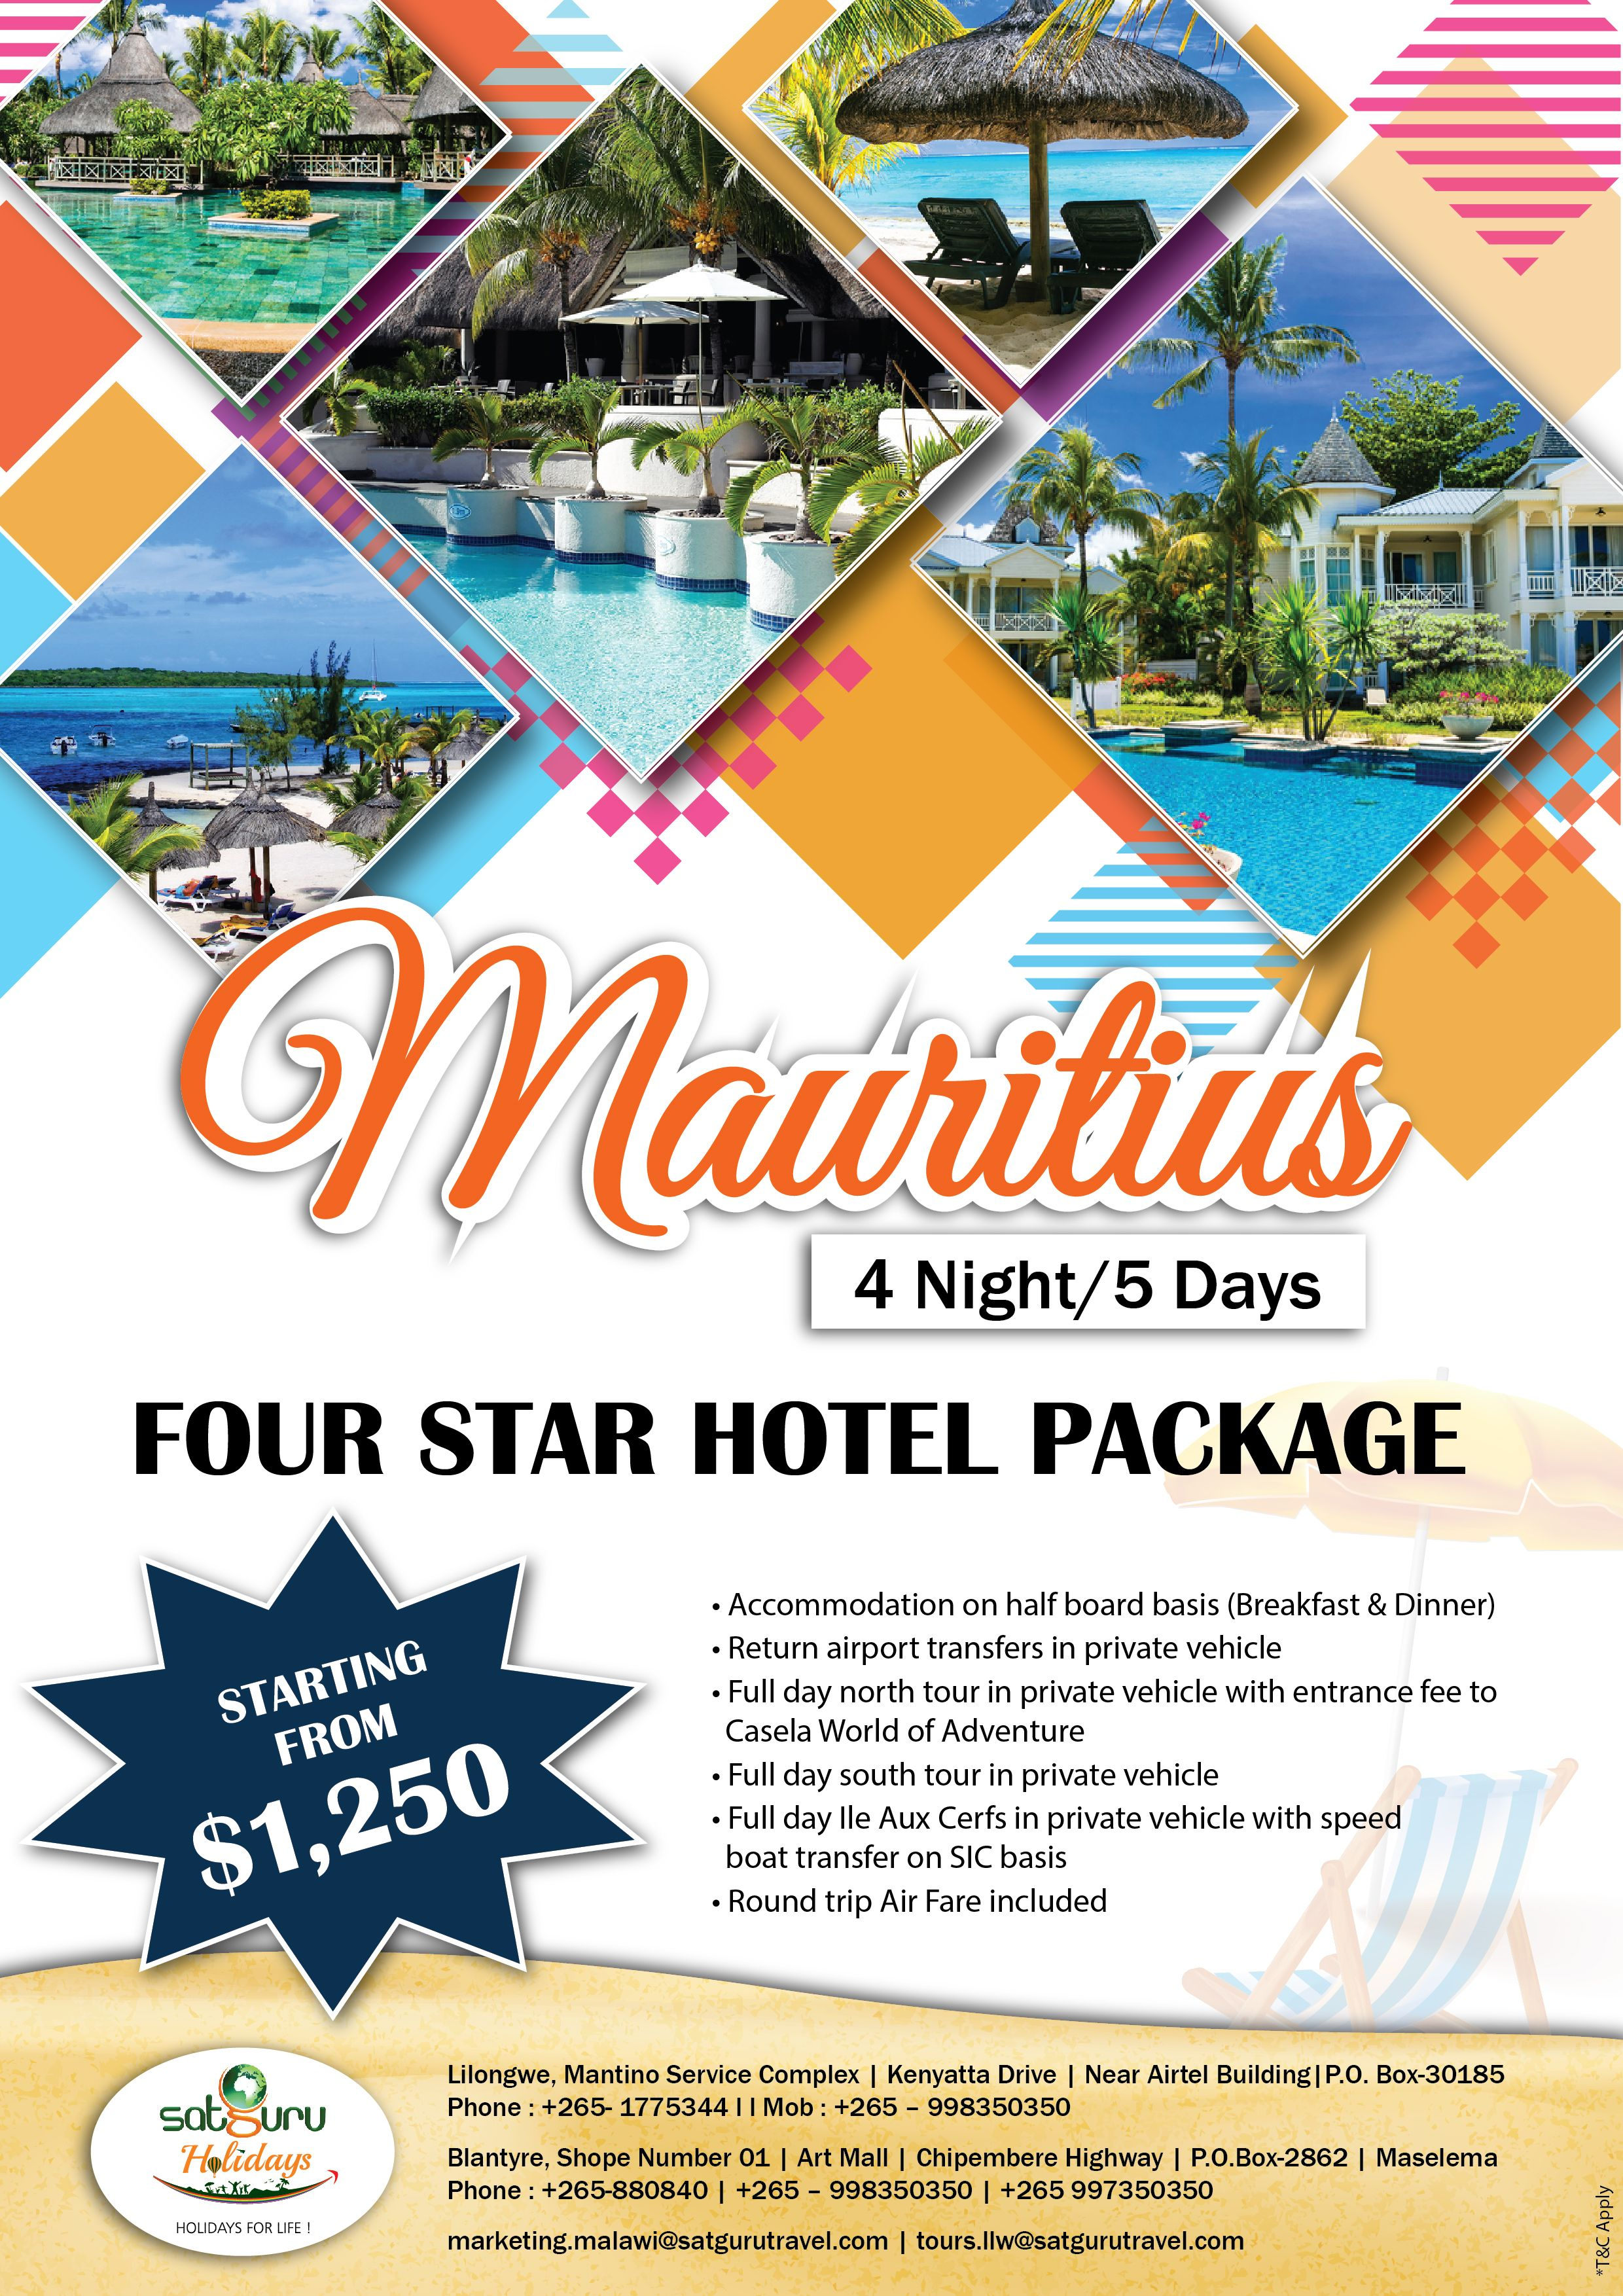 4 star hotel package starting at 1250 usd contact us